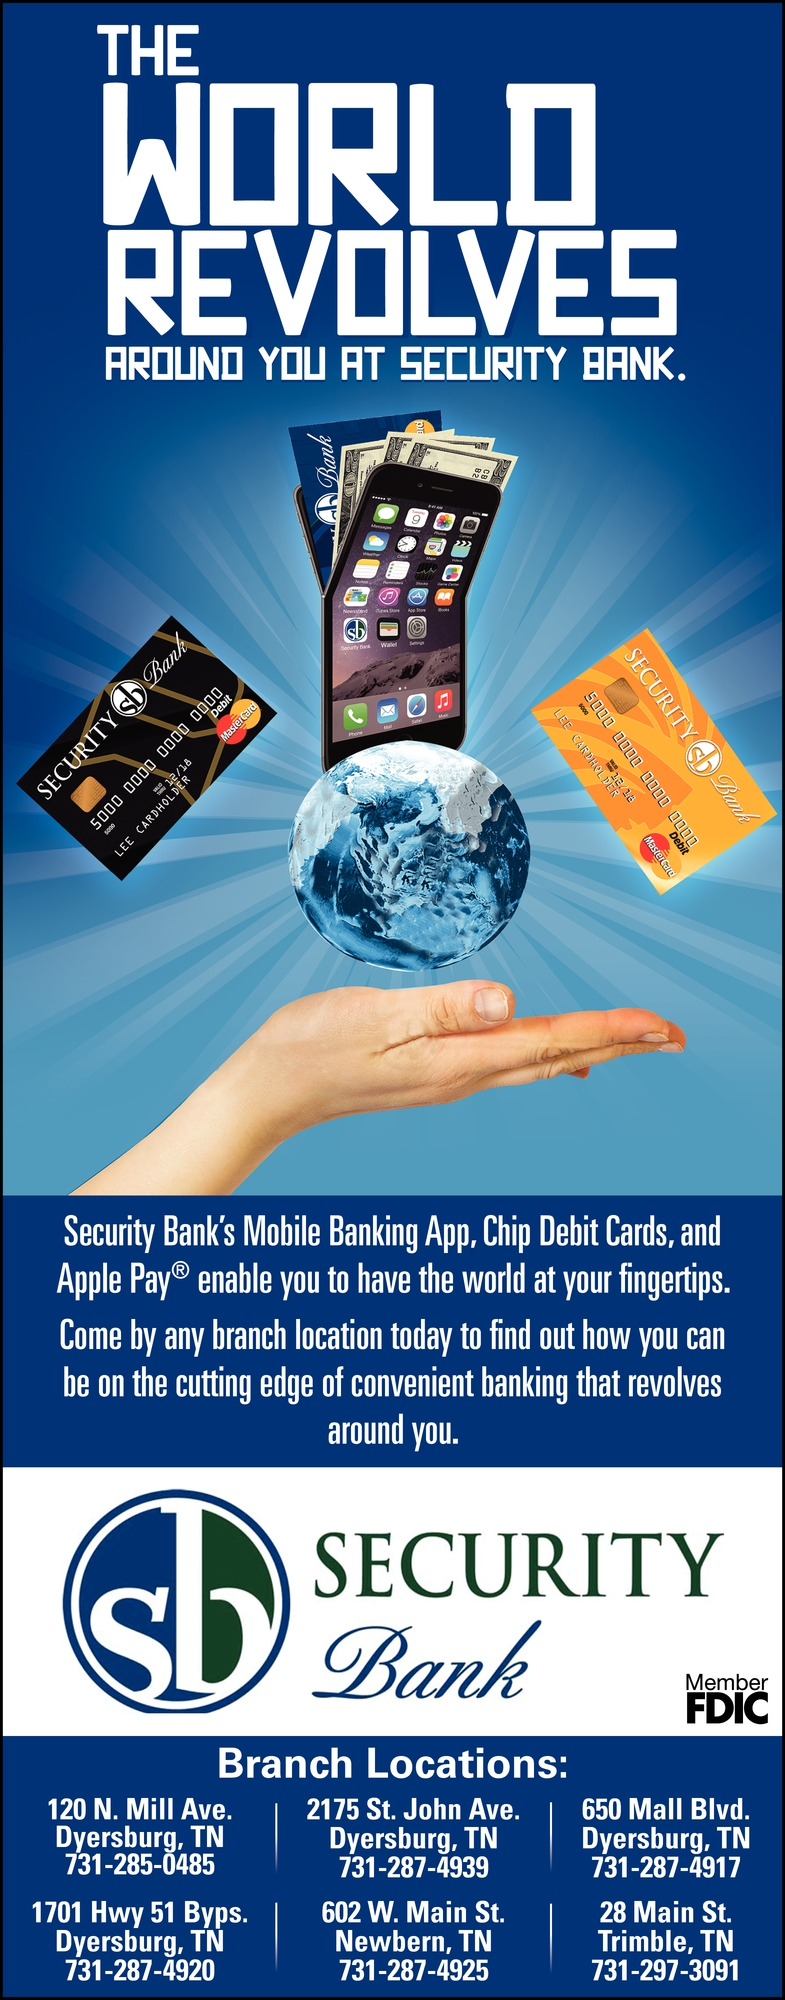 The World Revolves Around You at Security Bank